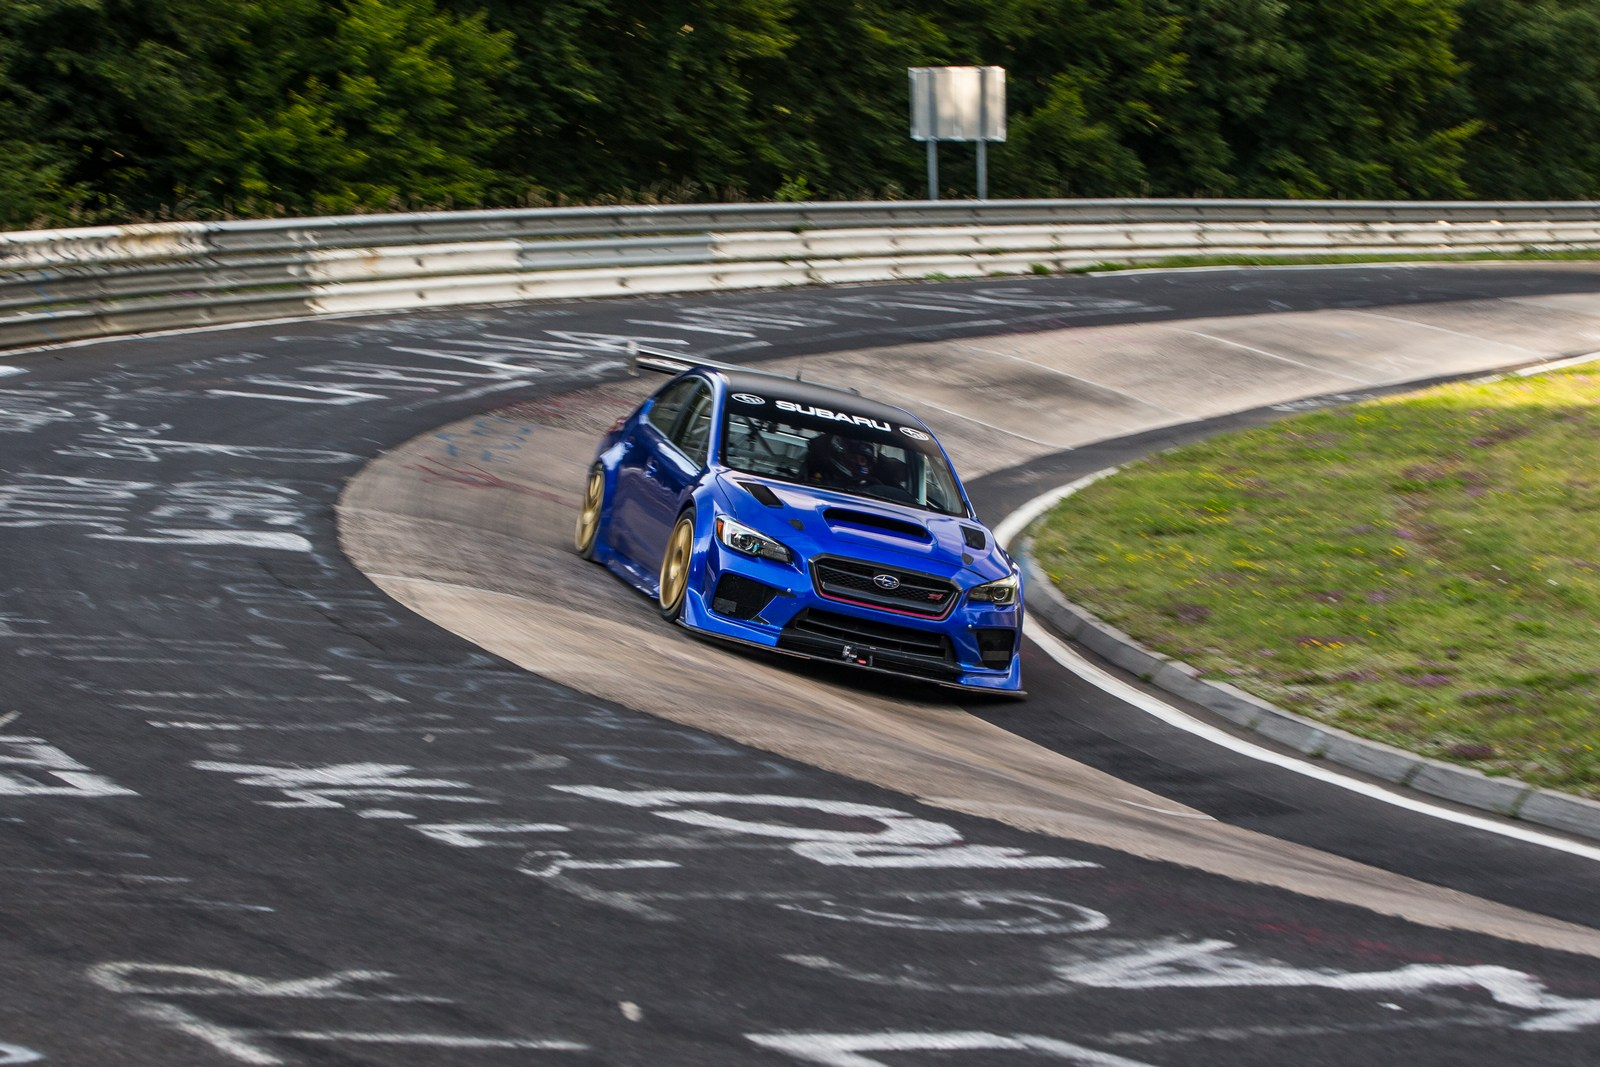 subaru releases footage of record setting n rburgring run. Black Bedroom Furniture Sets. Home Design Ideas